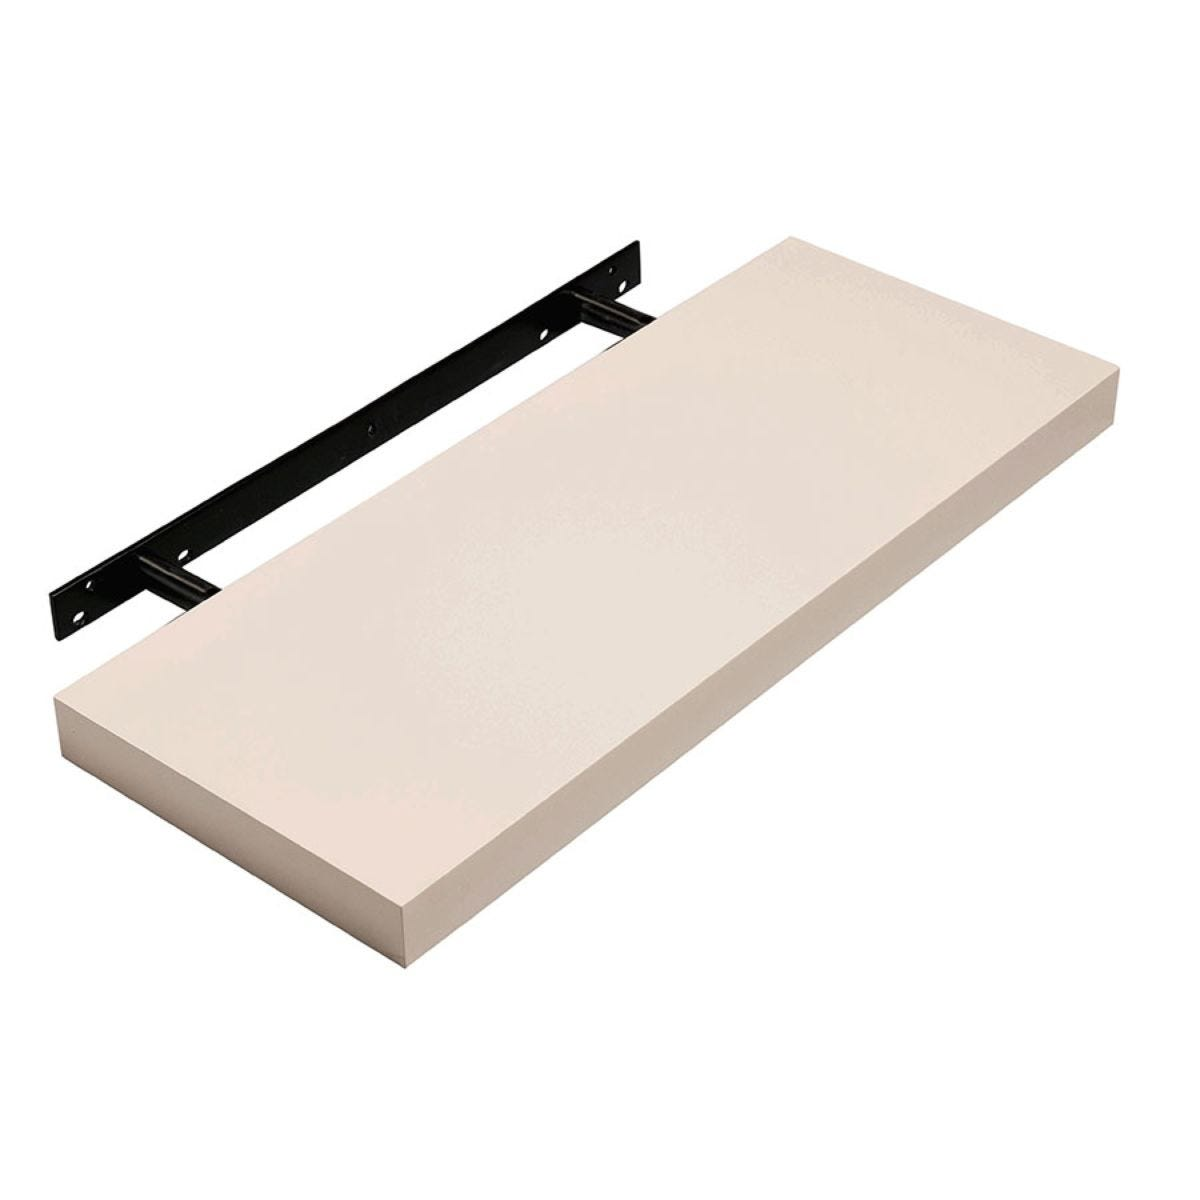 Core Products 60cm Floating Shelf Kit - Cream